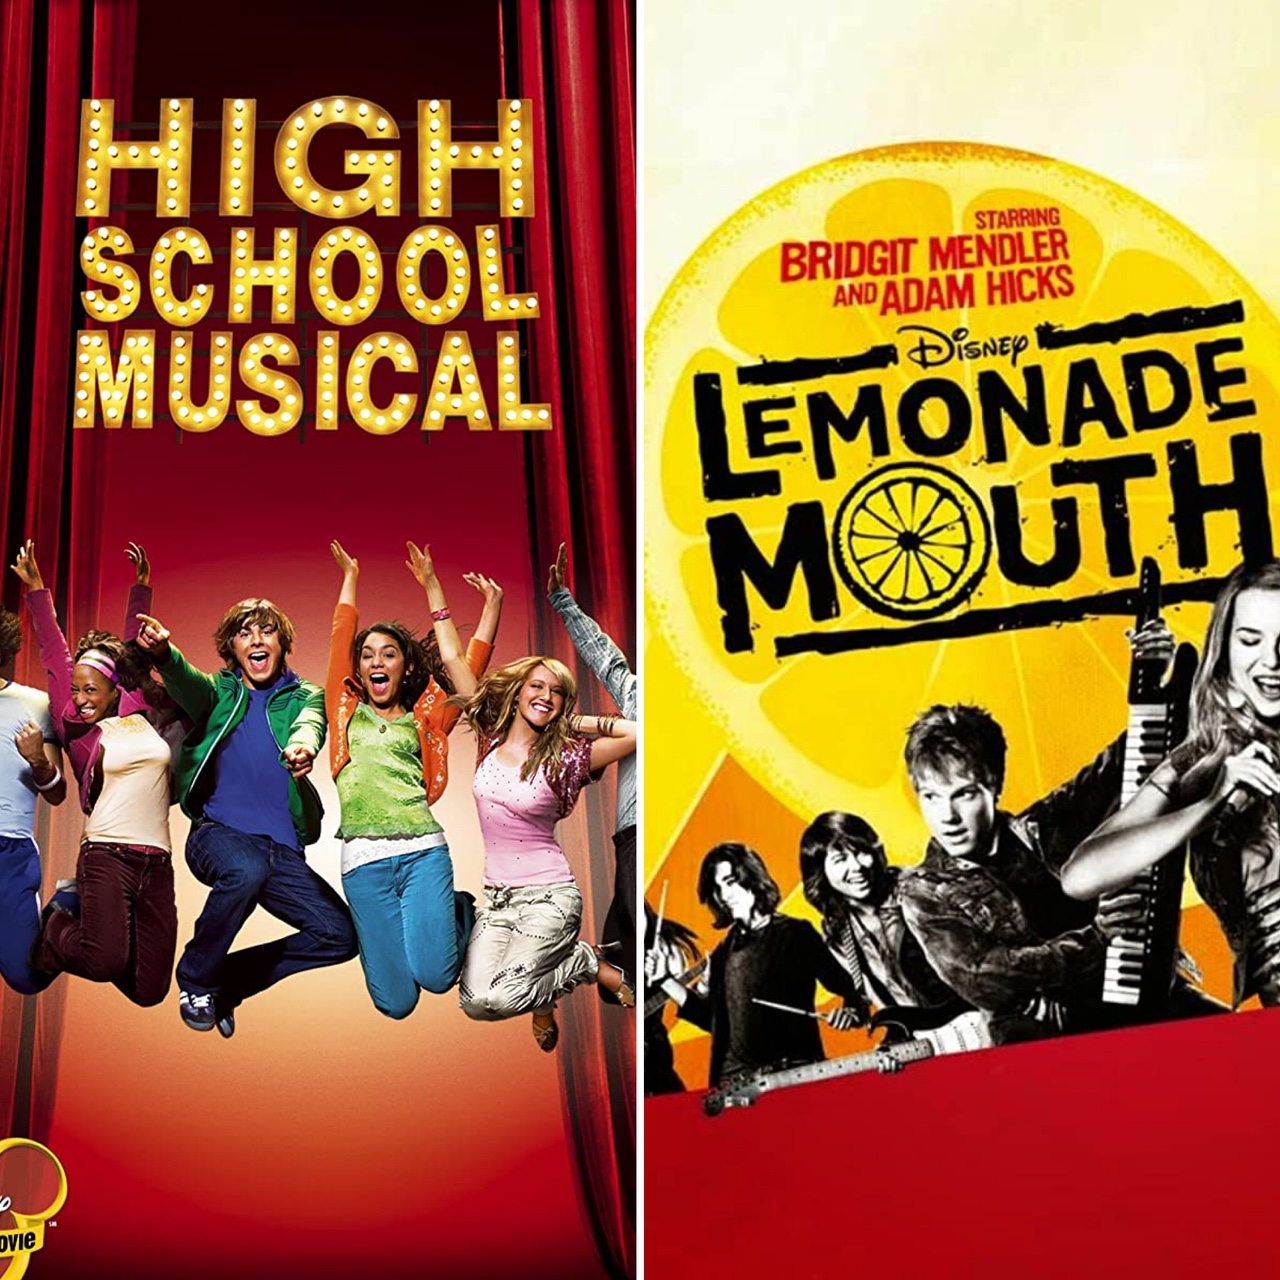 High School Musical vs. Lemonade Mouth: Which is Better?